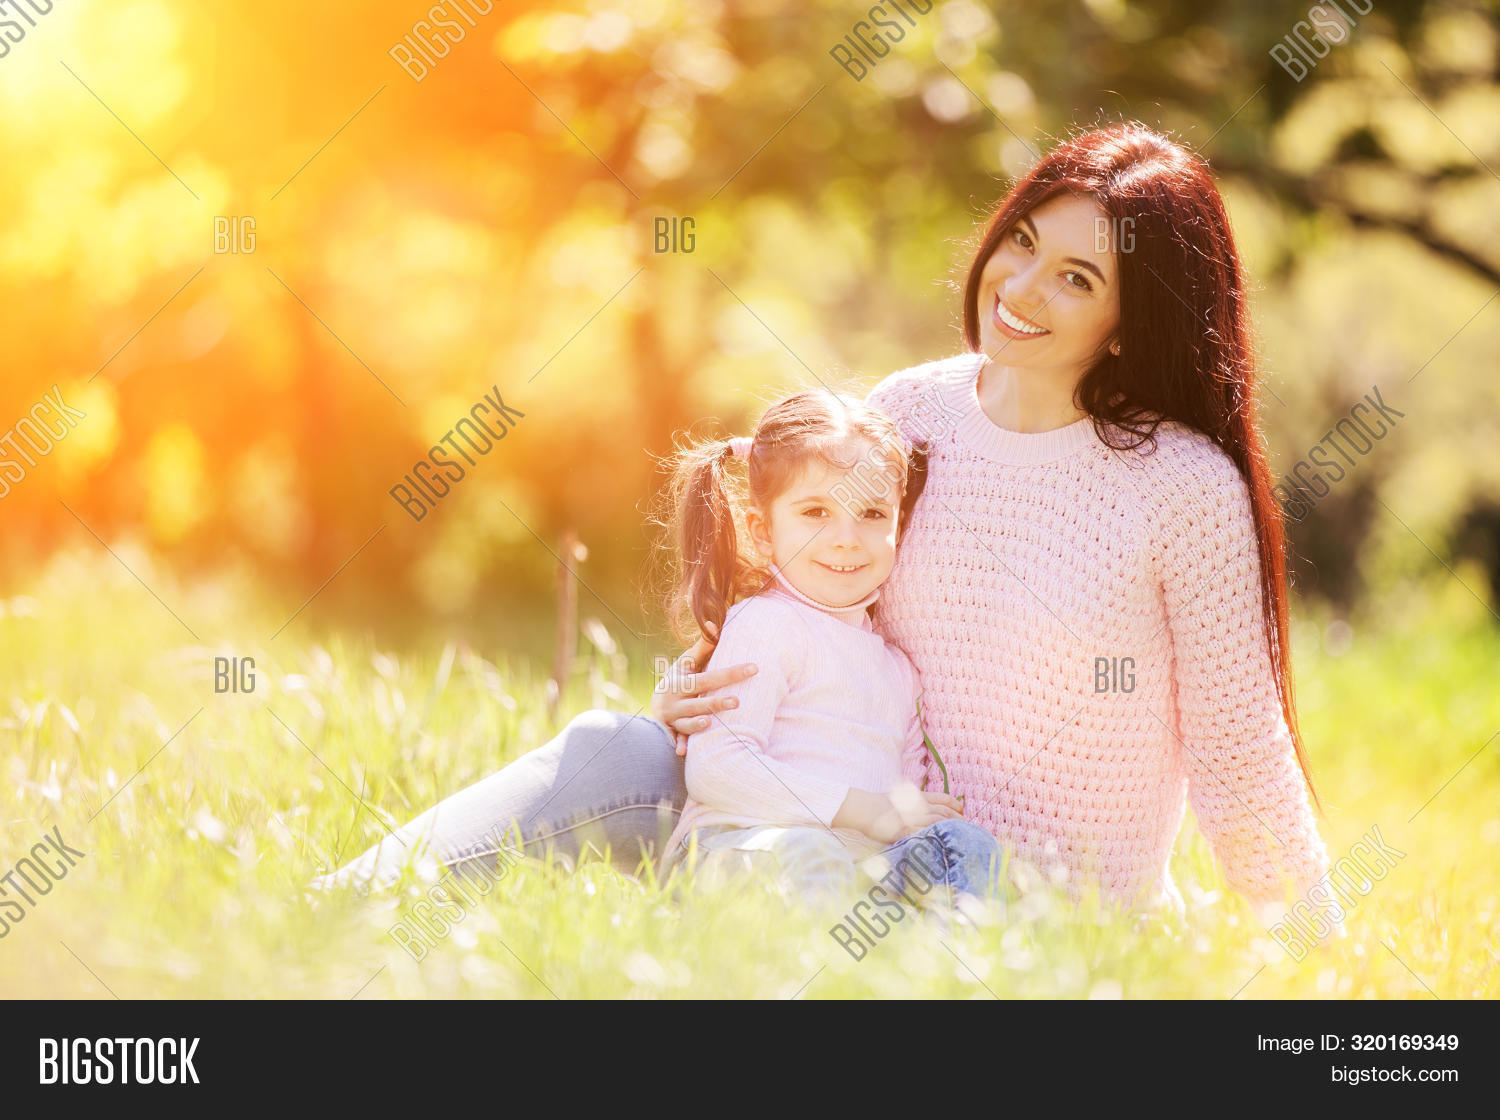 affection,autumn,baby,background,beautiful,carefree,child,childhood,cuddling,cute,daughter,embrace,fall,family,foliage,fun,girl,grass,green,happiness,happy,healthy,hug,human,joy,kid,leisure,life,lifestyle,little,maternity,mom,mother,motherhood,nature,outdoor,parent,parenthood,park,people,play,relationship,relax,rest,season,sit,smiling,spring,summer,woman